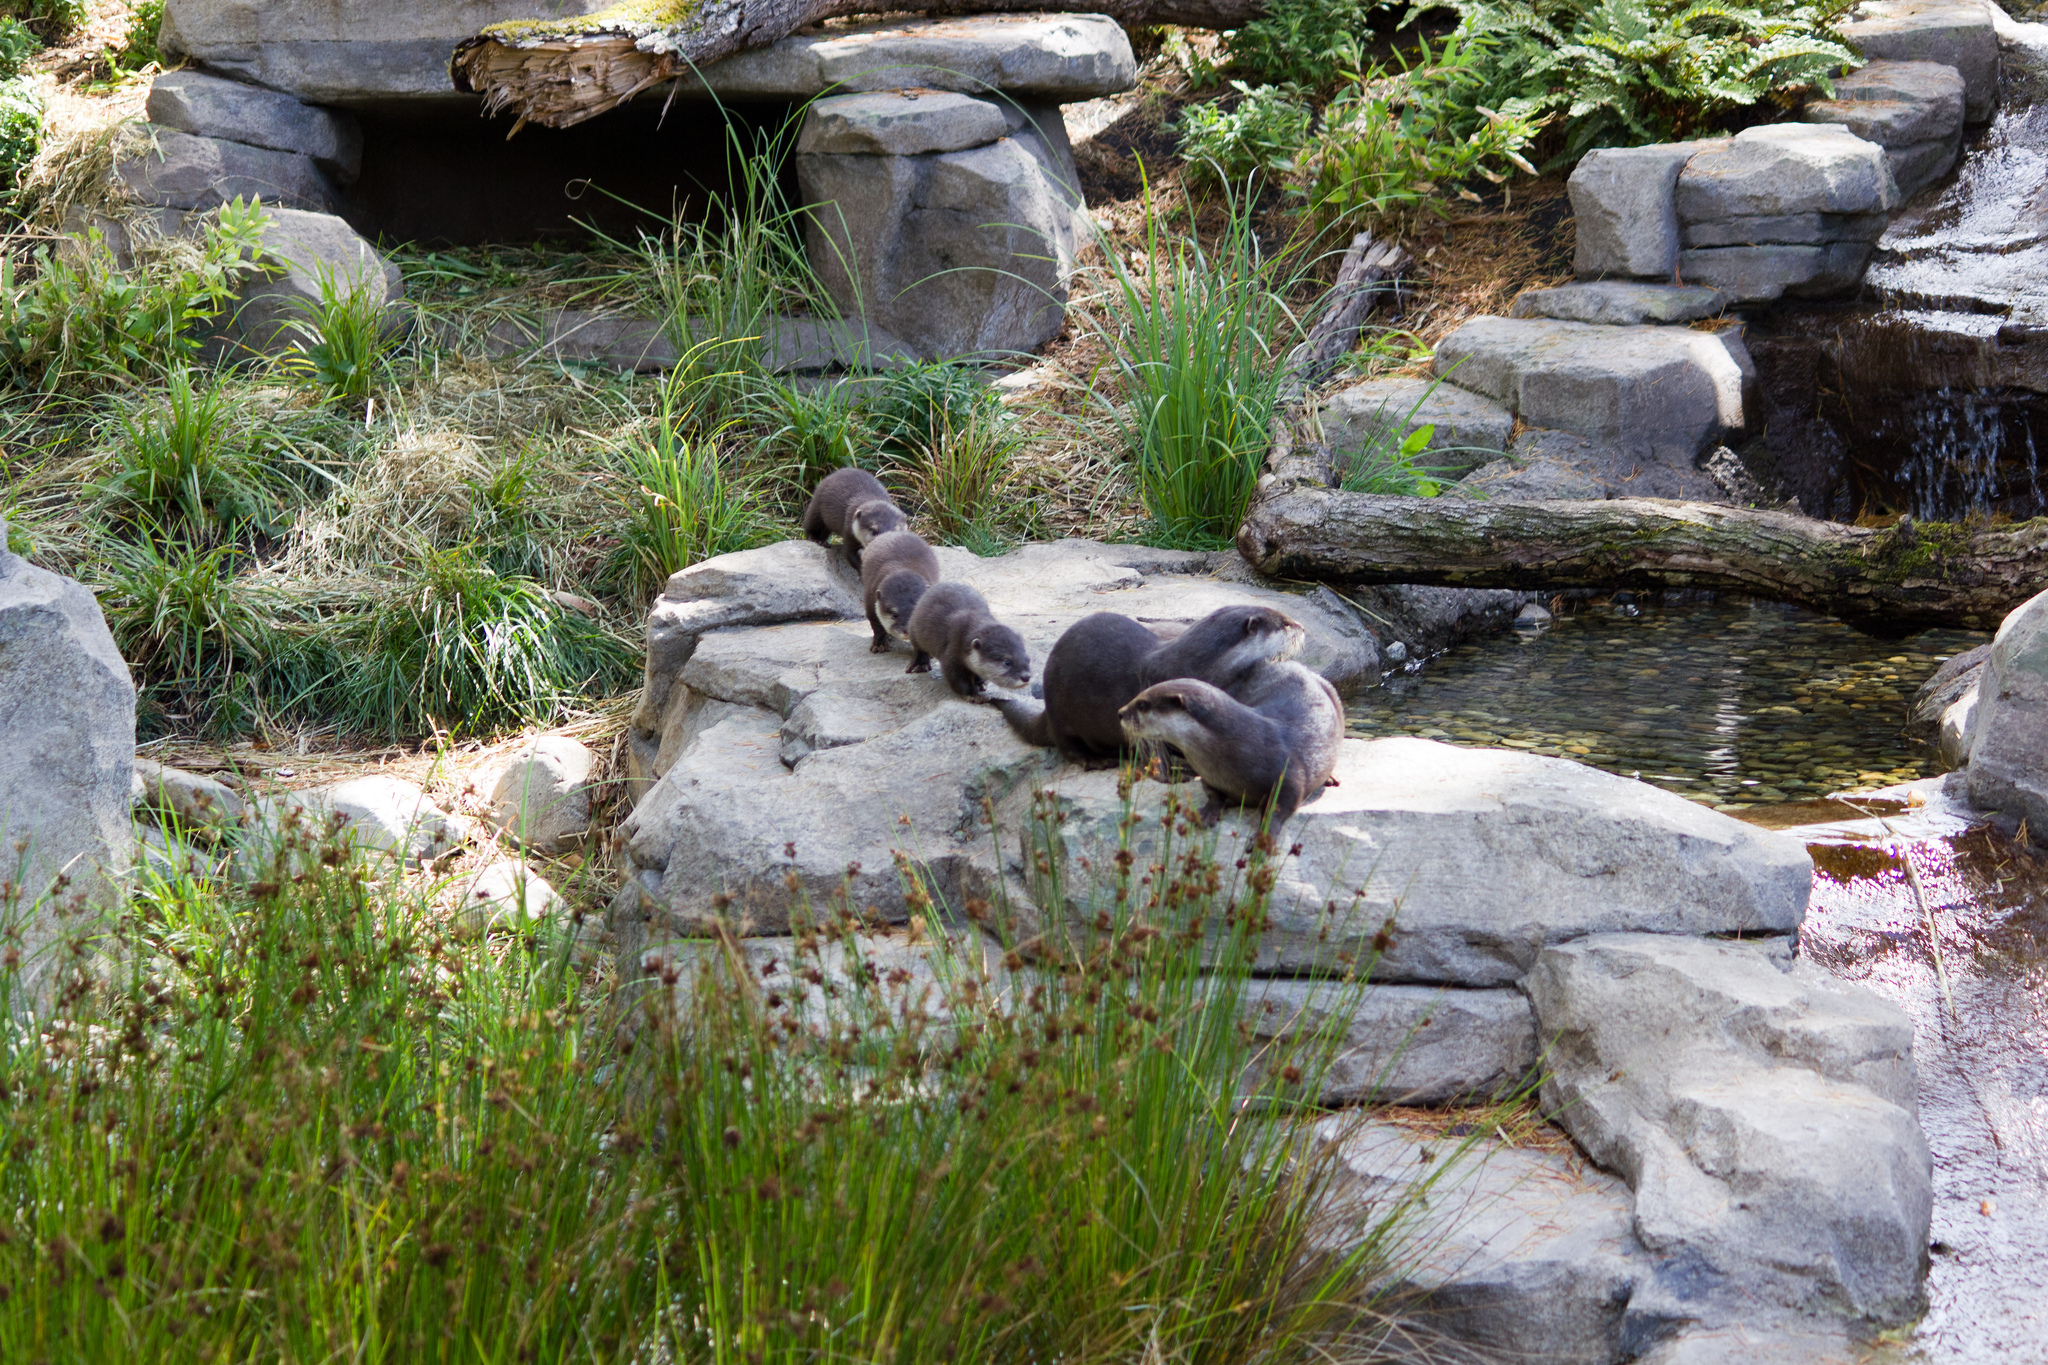 Otter Family Goes in Single File